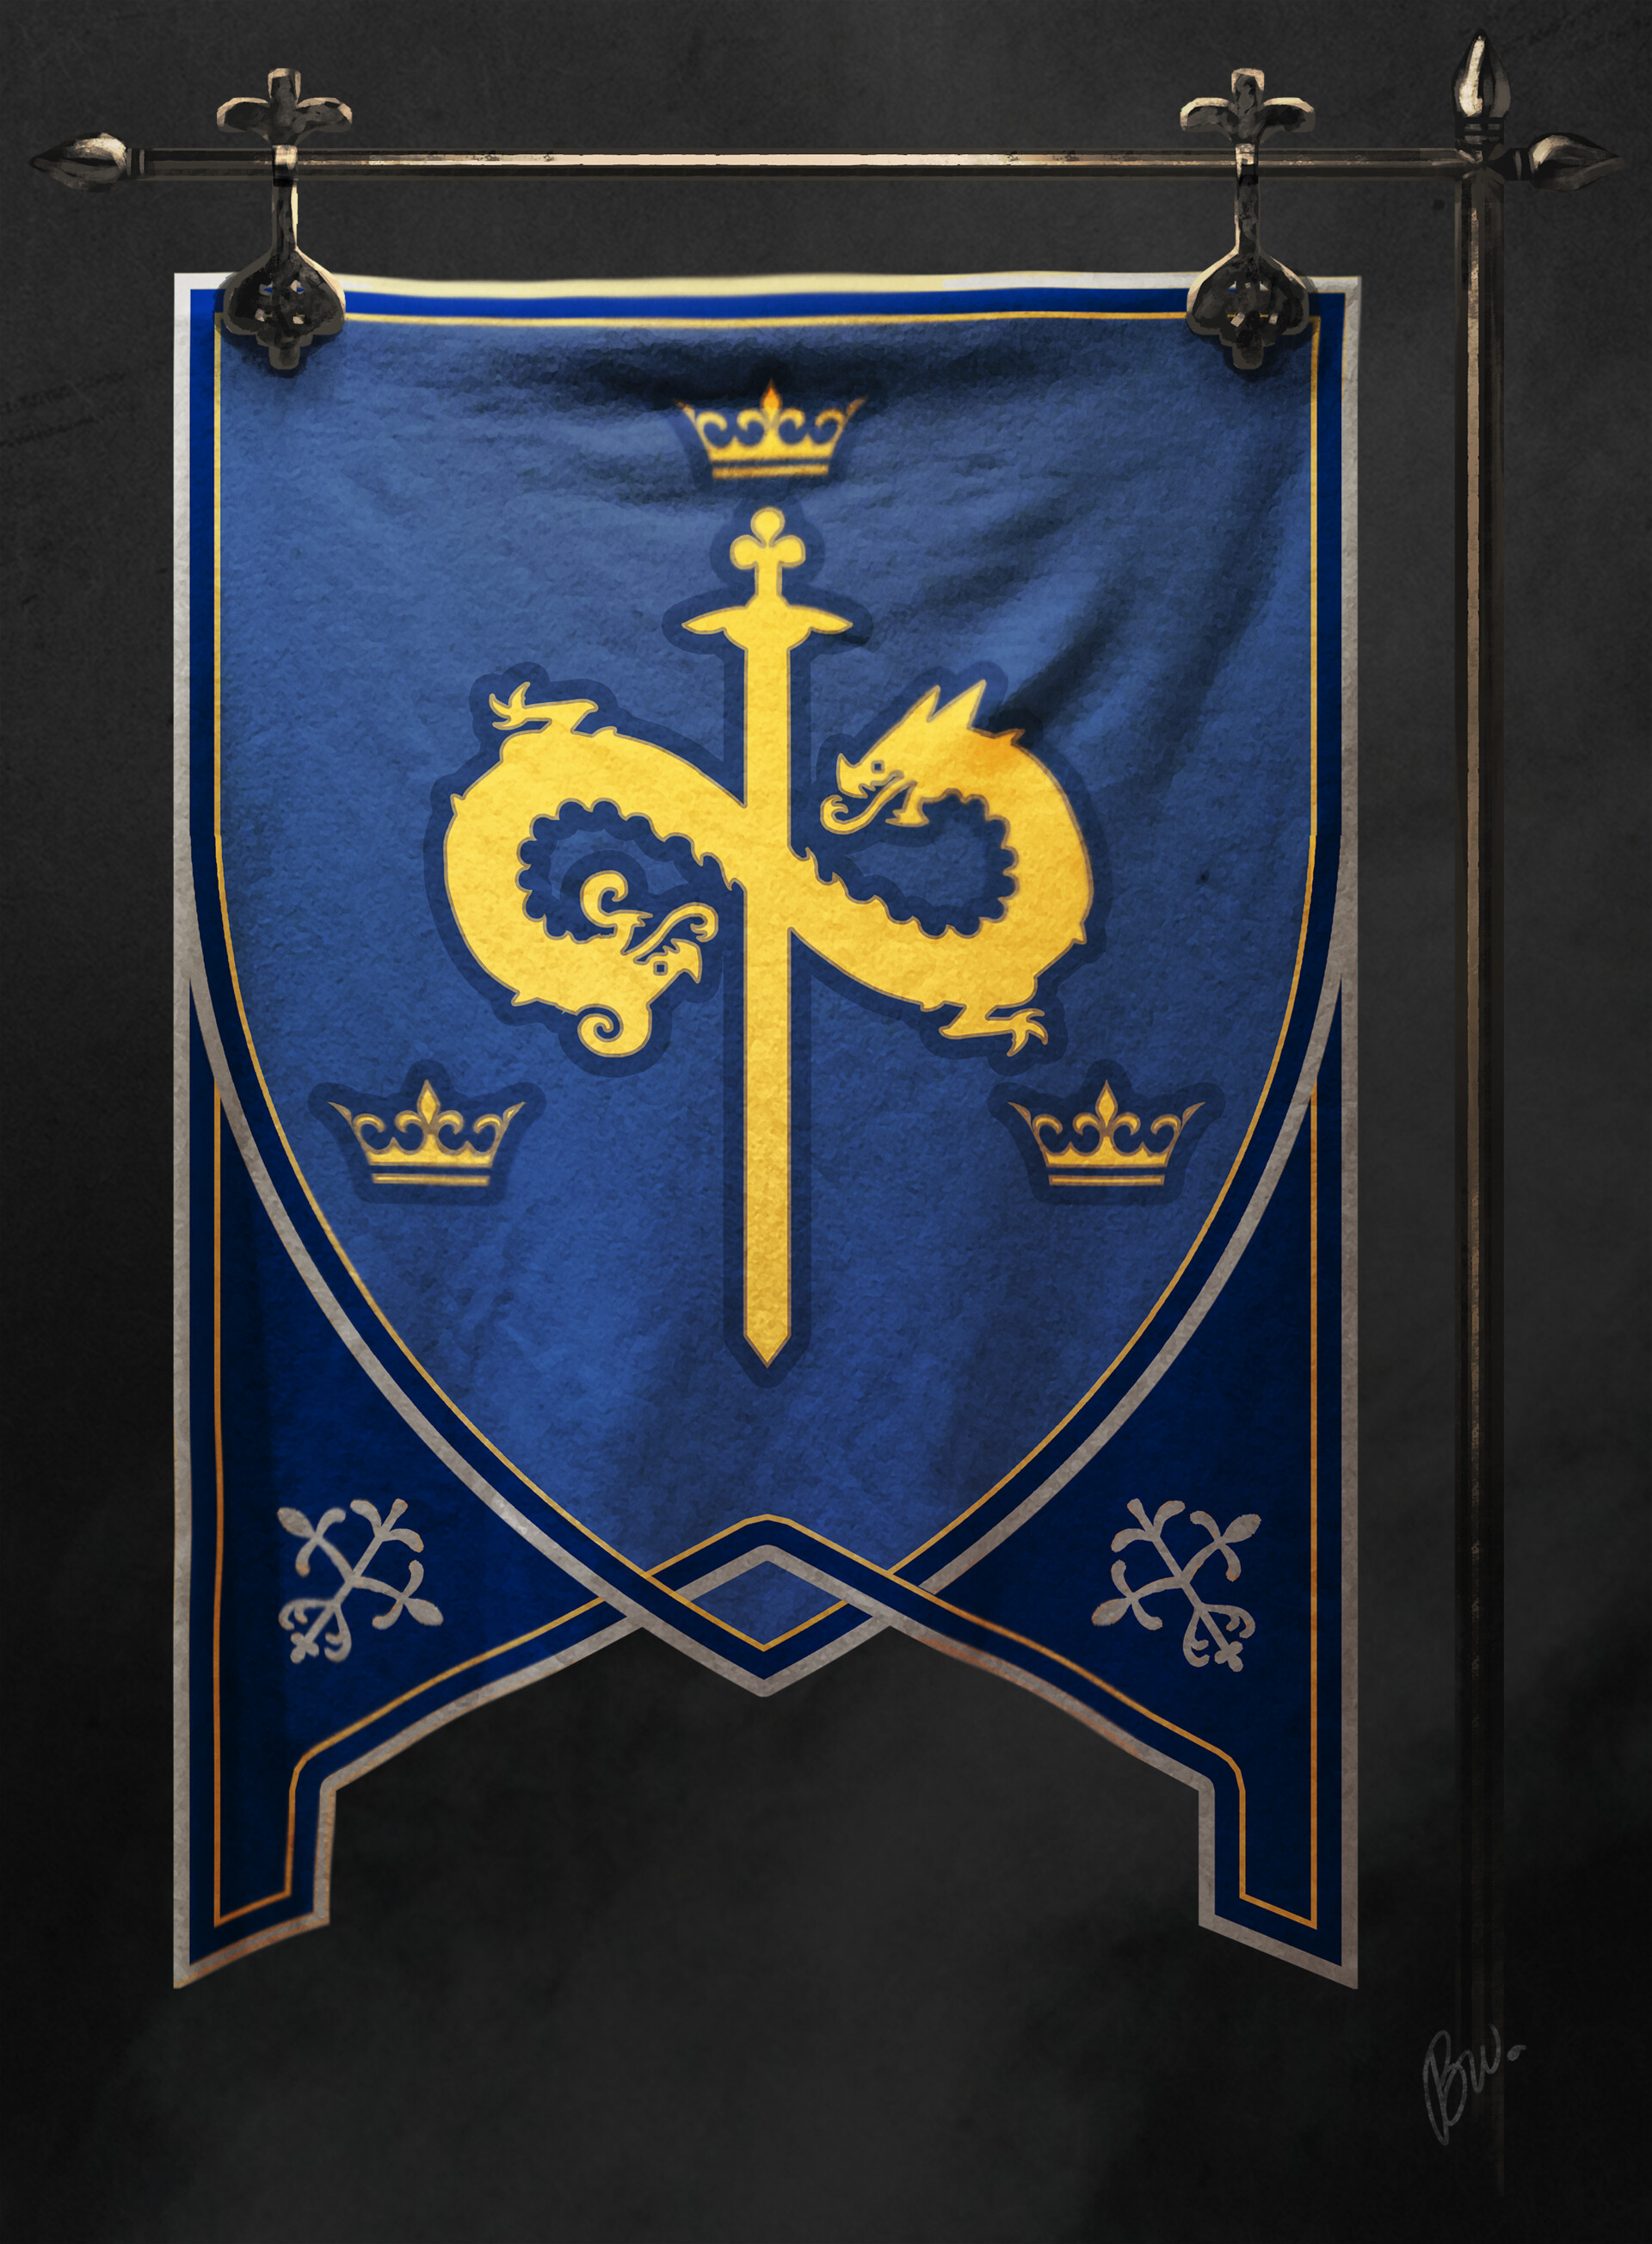 the dragons represent the Pendragon family in the form of an infinity logo (sort of) to represent the Once and Future King over the three kingdoms(crowns) and with excalibur in hand(the sword).